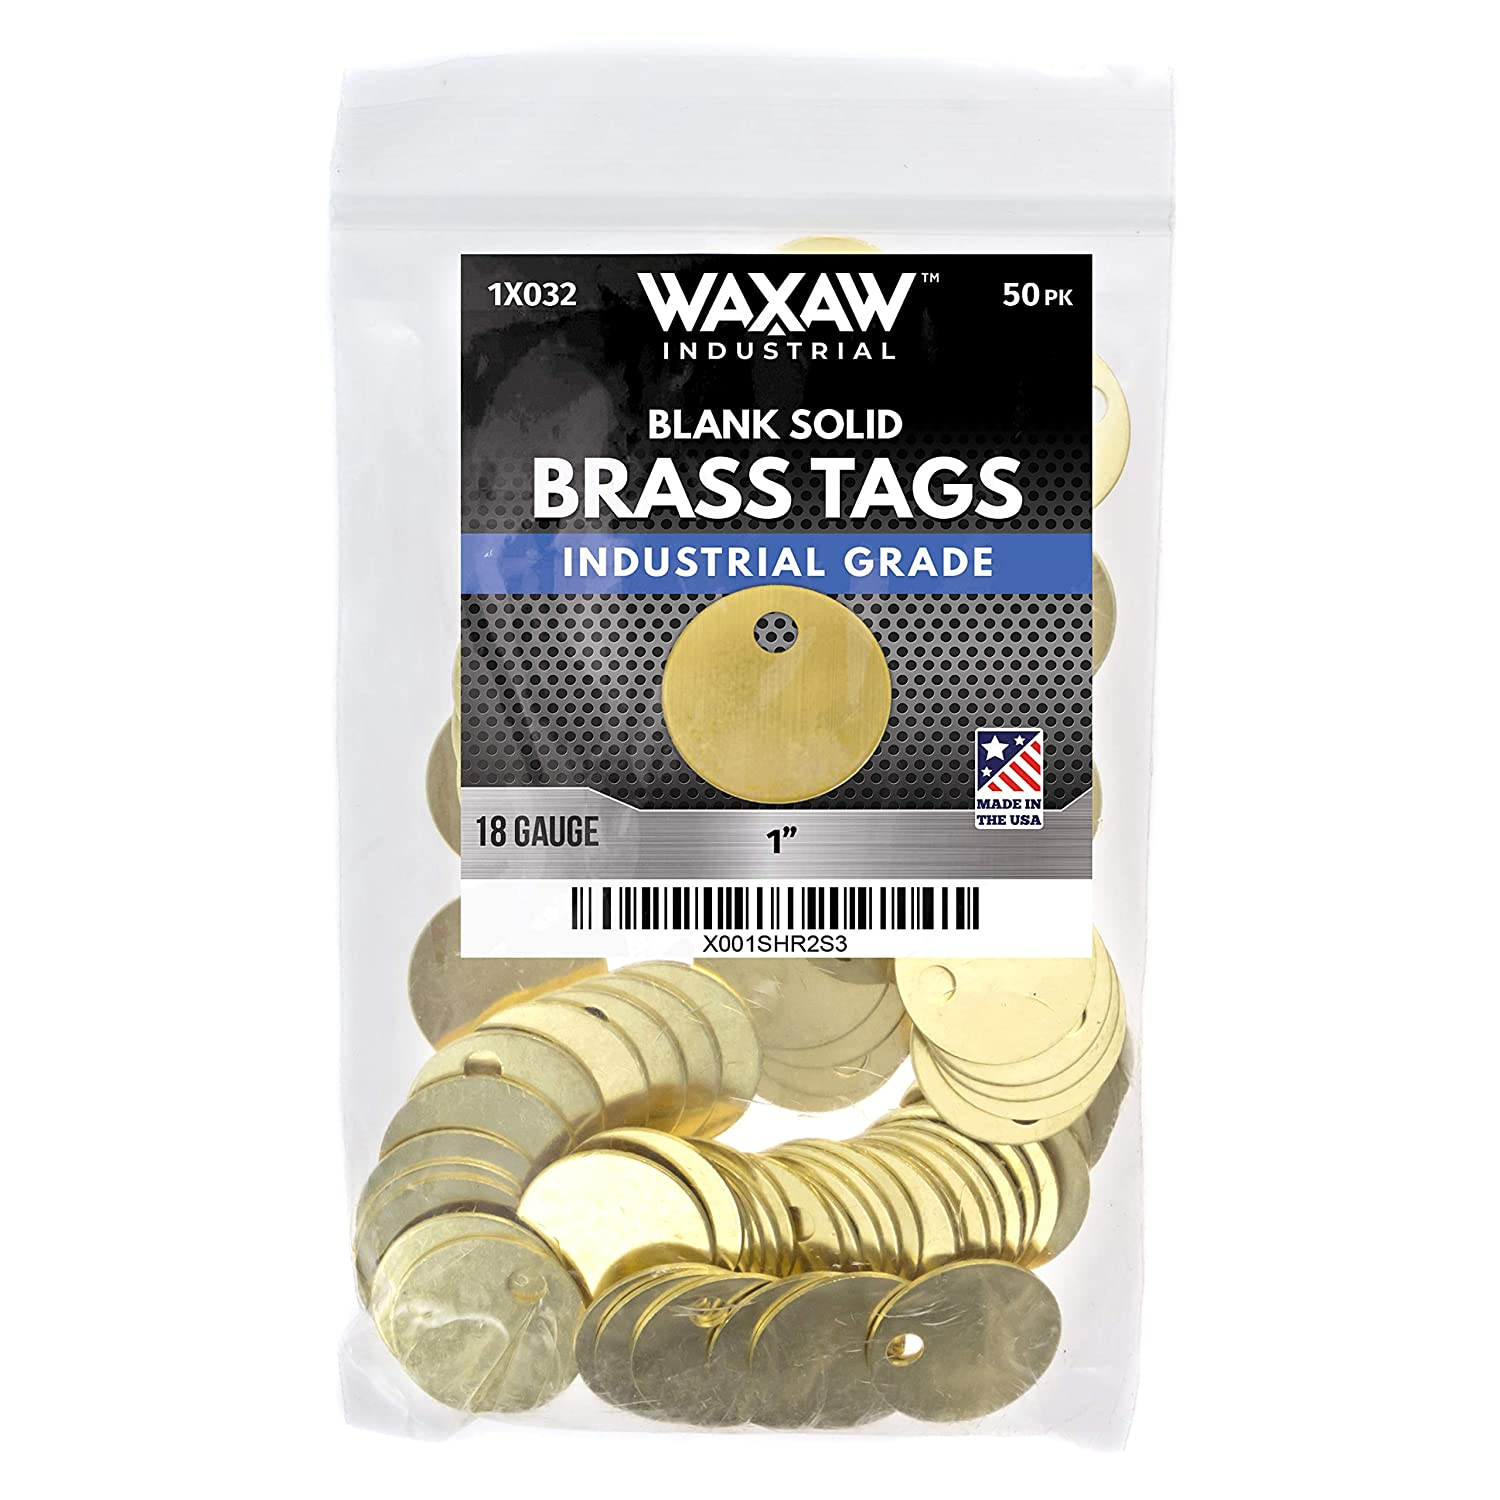 """1"""" Solid Brass Stamping Tags (50 Pack) Industrial Grade 0.040"""" Blank Chits for Pipe Valves, Keys, Tool and Equipment Labeling 